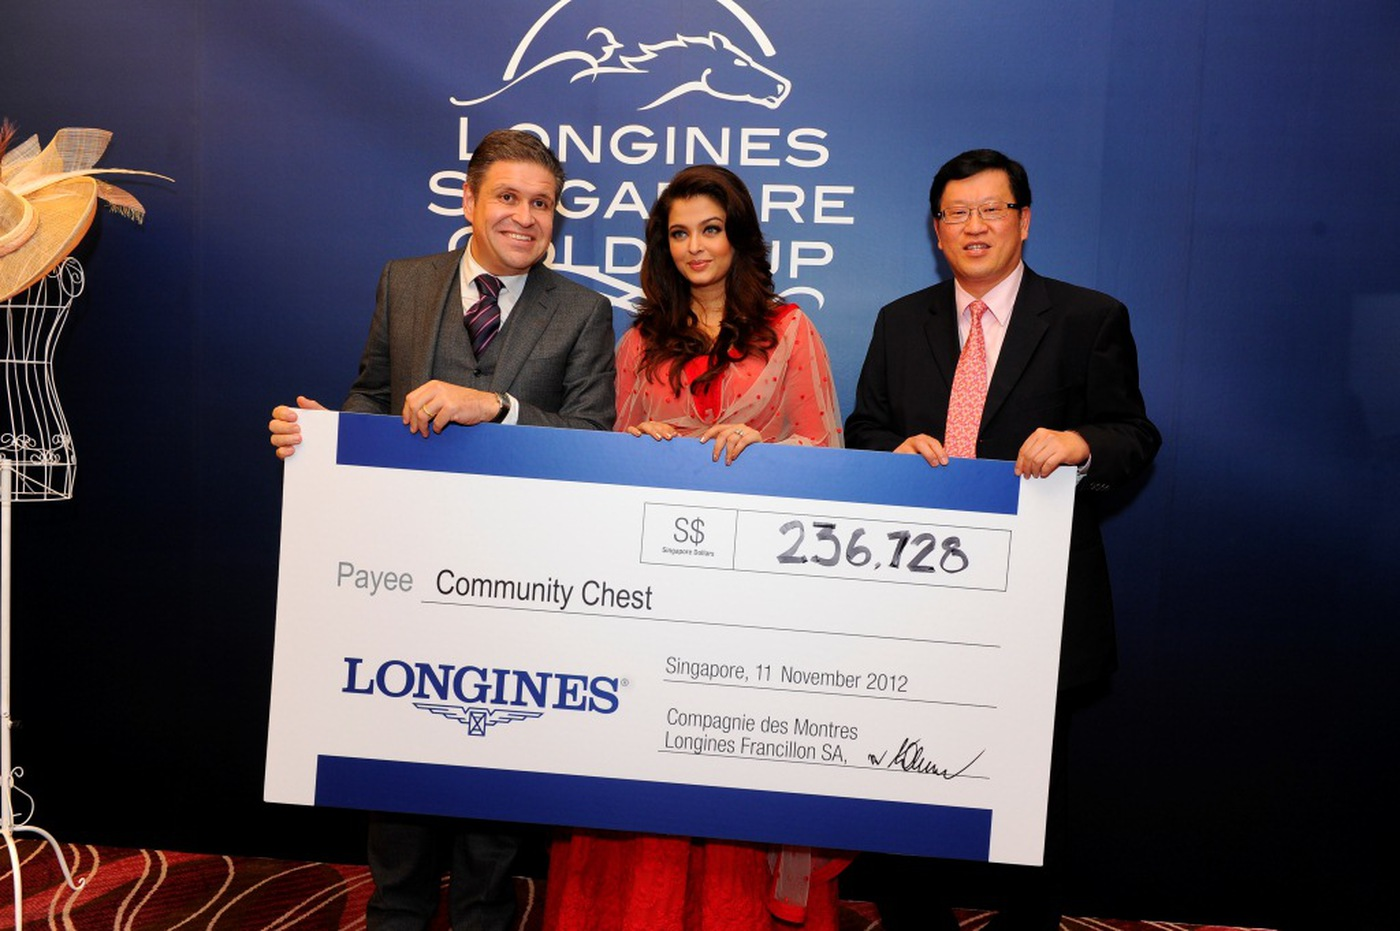 Longines Flat Racing Event: Longines Singapore Gold Cup 2012 raises S$236,728 9